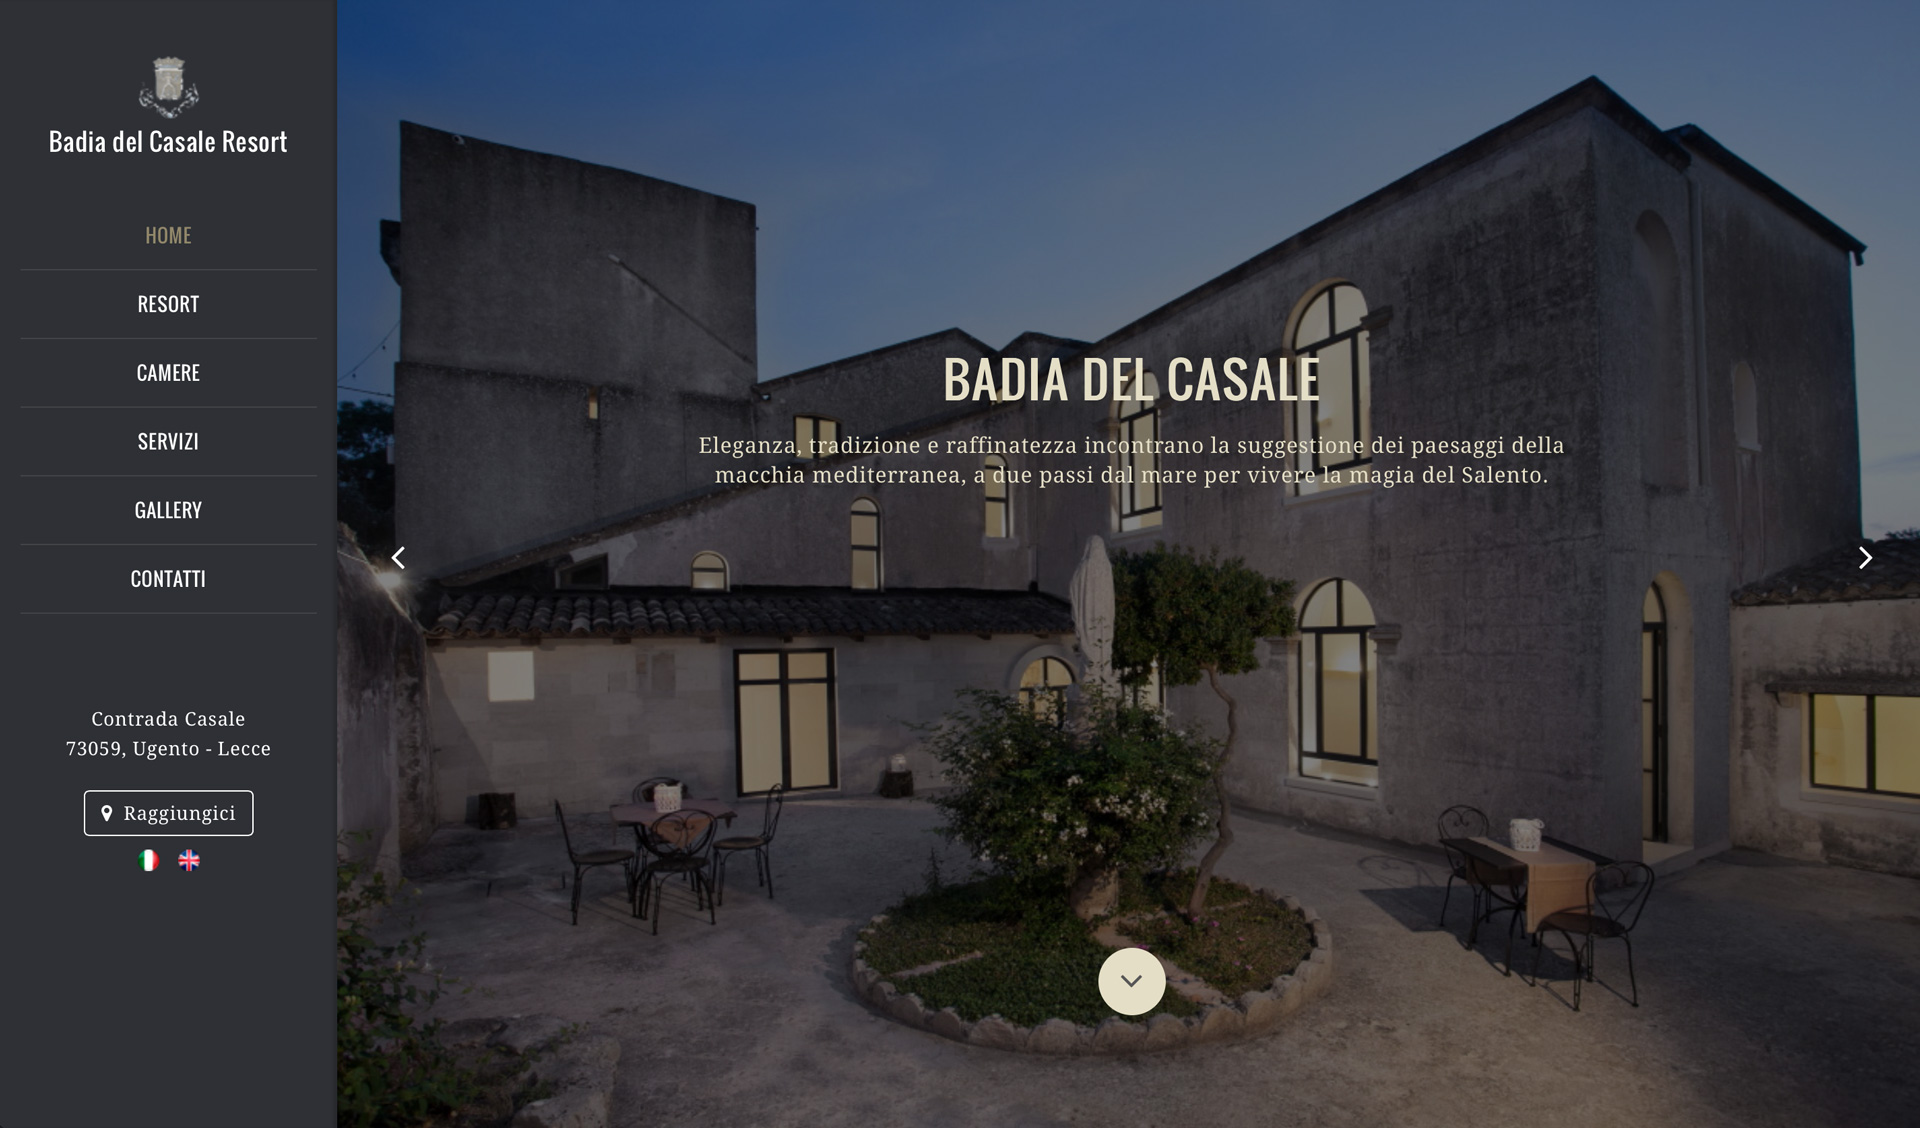 Badia del Casale Resort